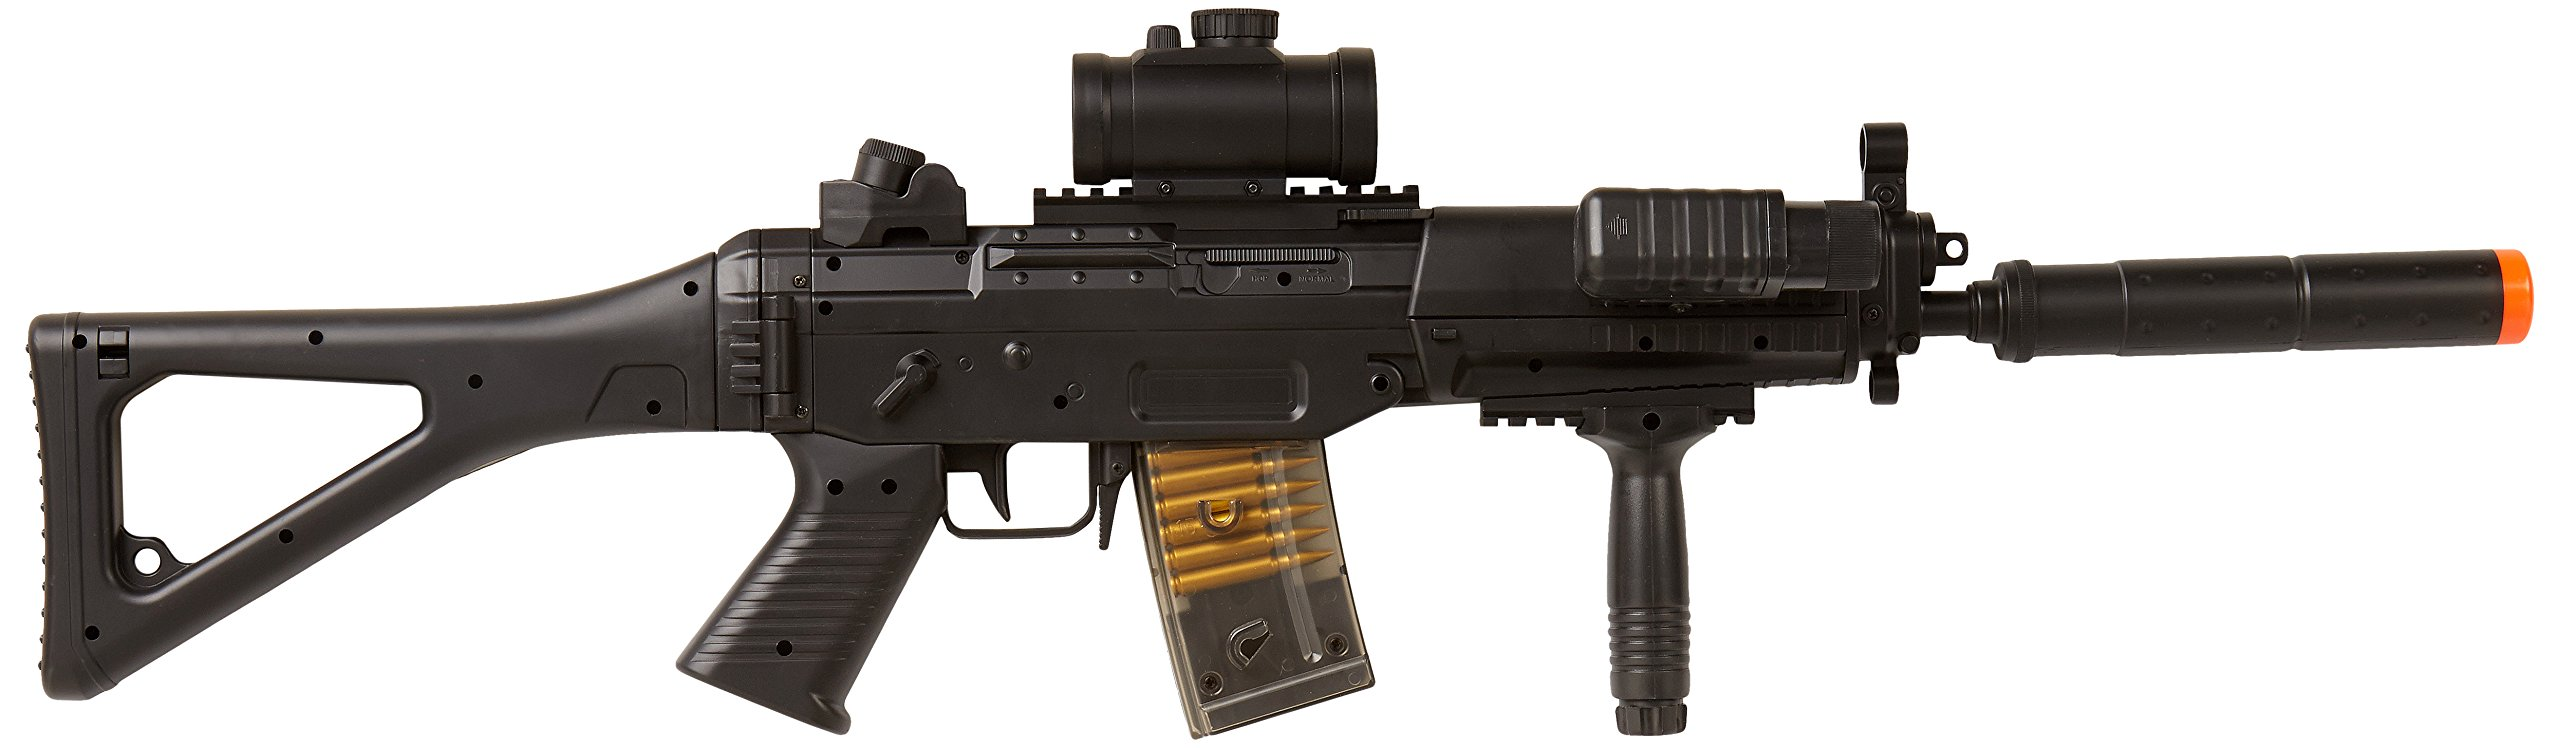 BBTac BT-M82 Airsoft Electric Gun Assault Rifle Fully Loaded AEG Automatic & Semi Full size, Black